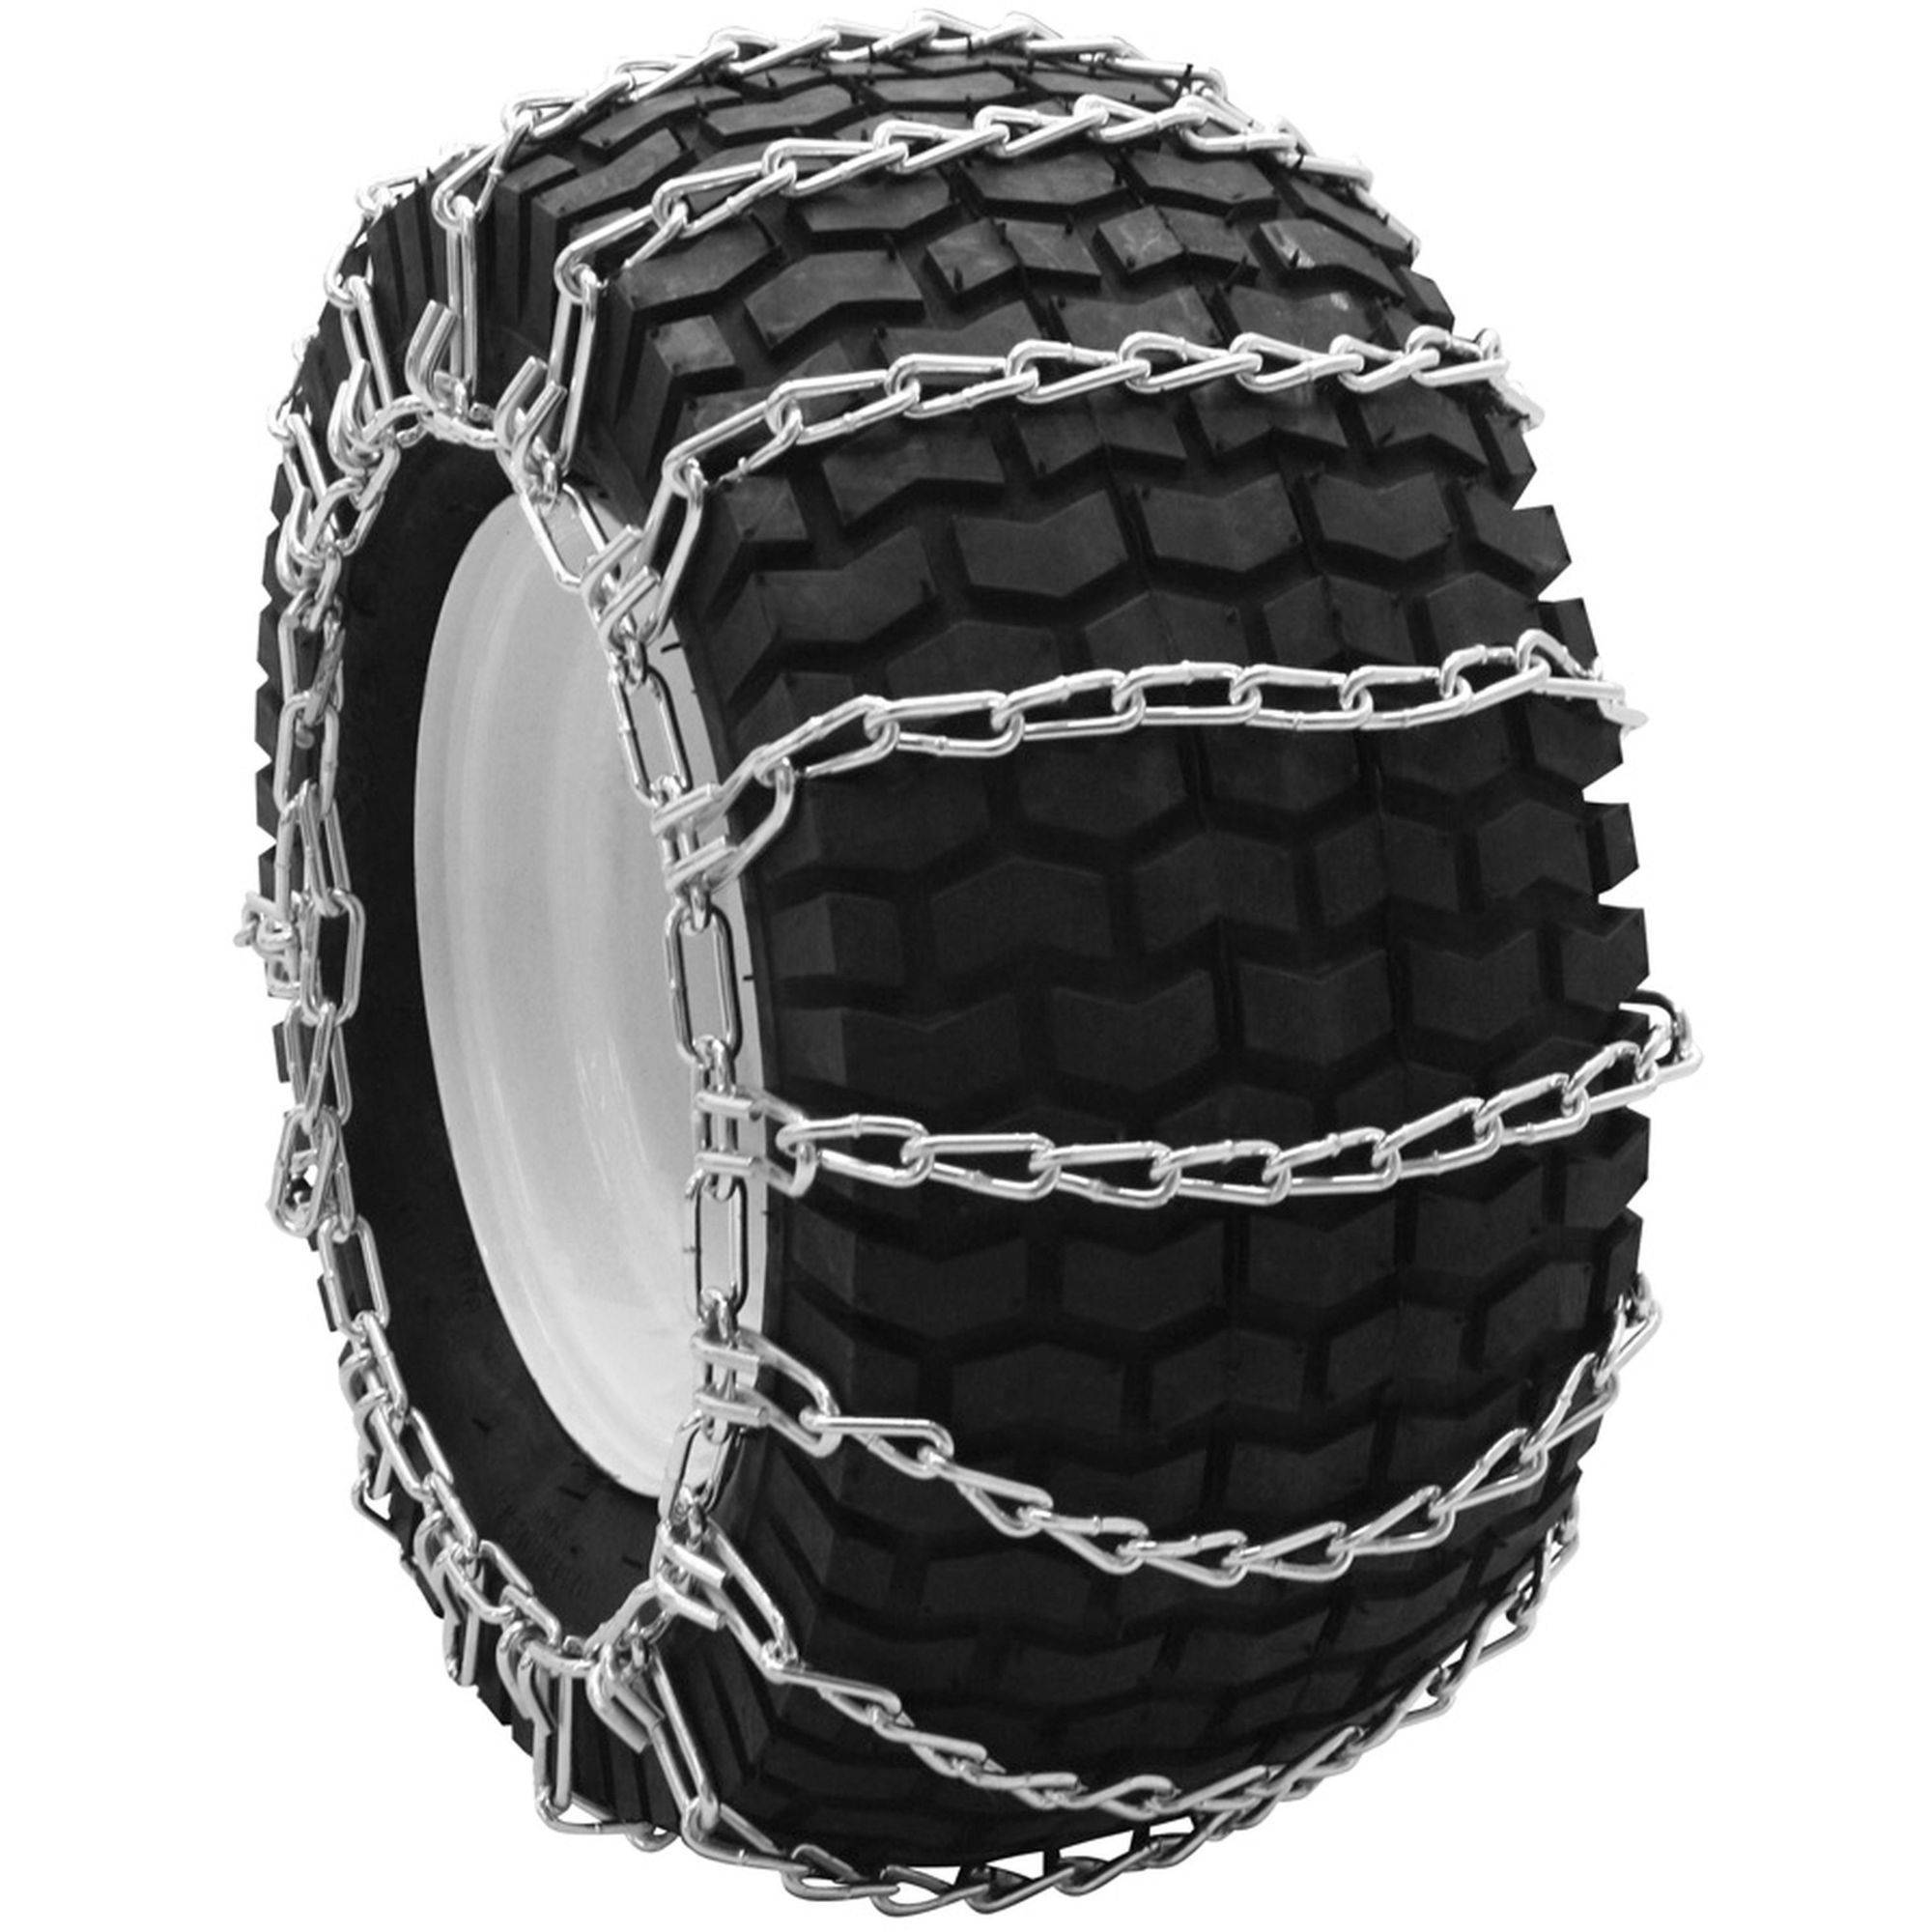 Snowblower And Lawn Tractor Tire Chains 20x8 00x8 2 Link Spacing